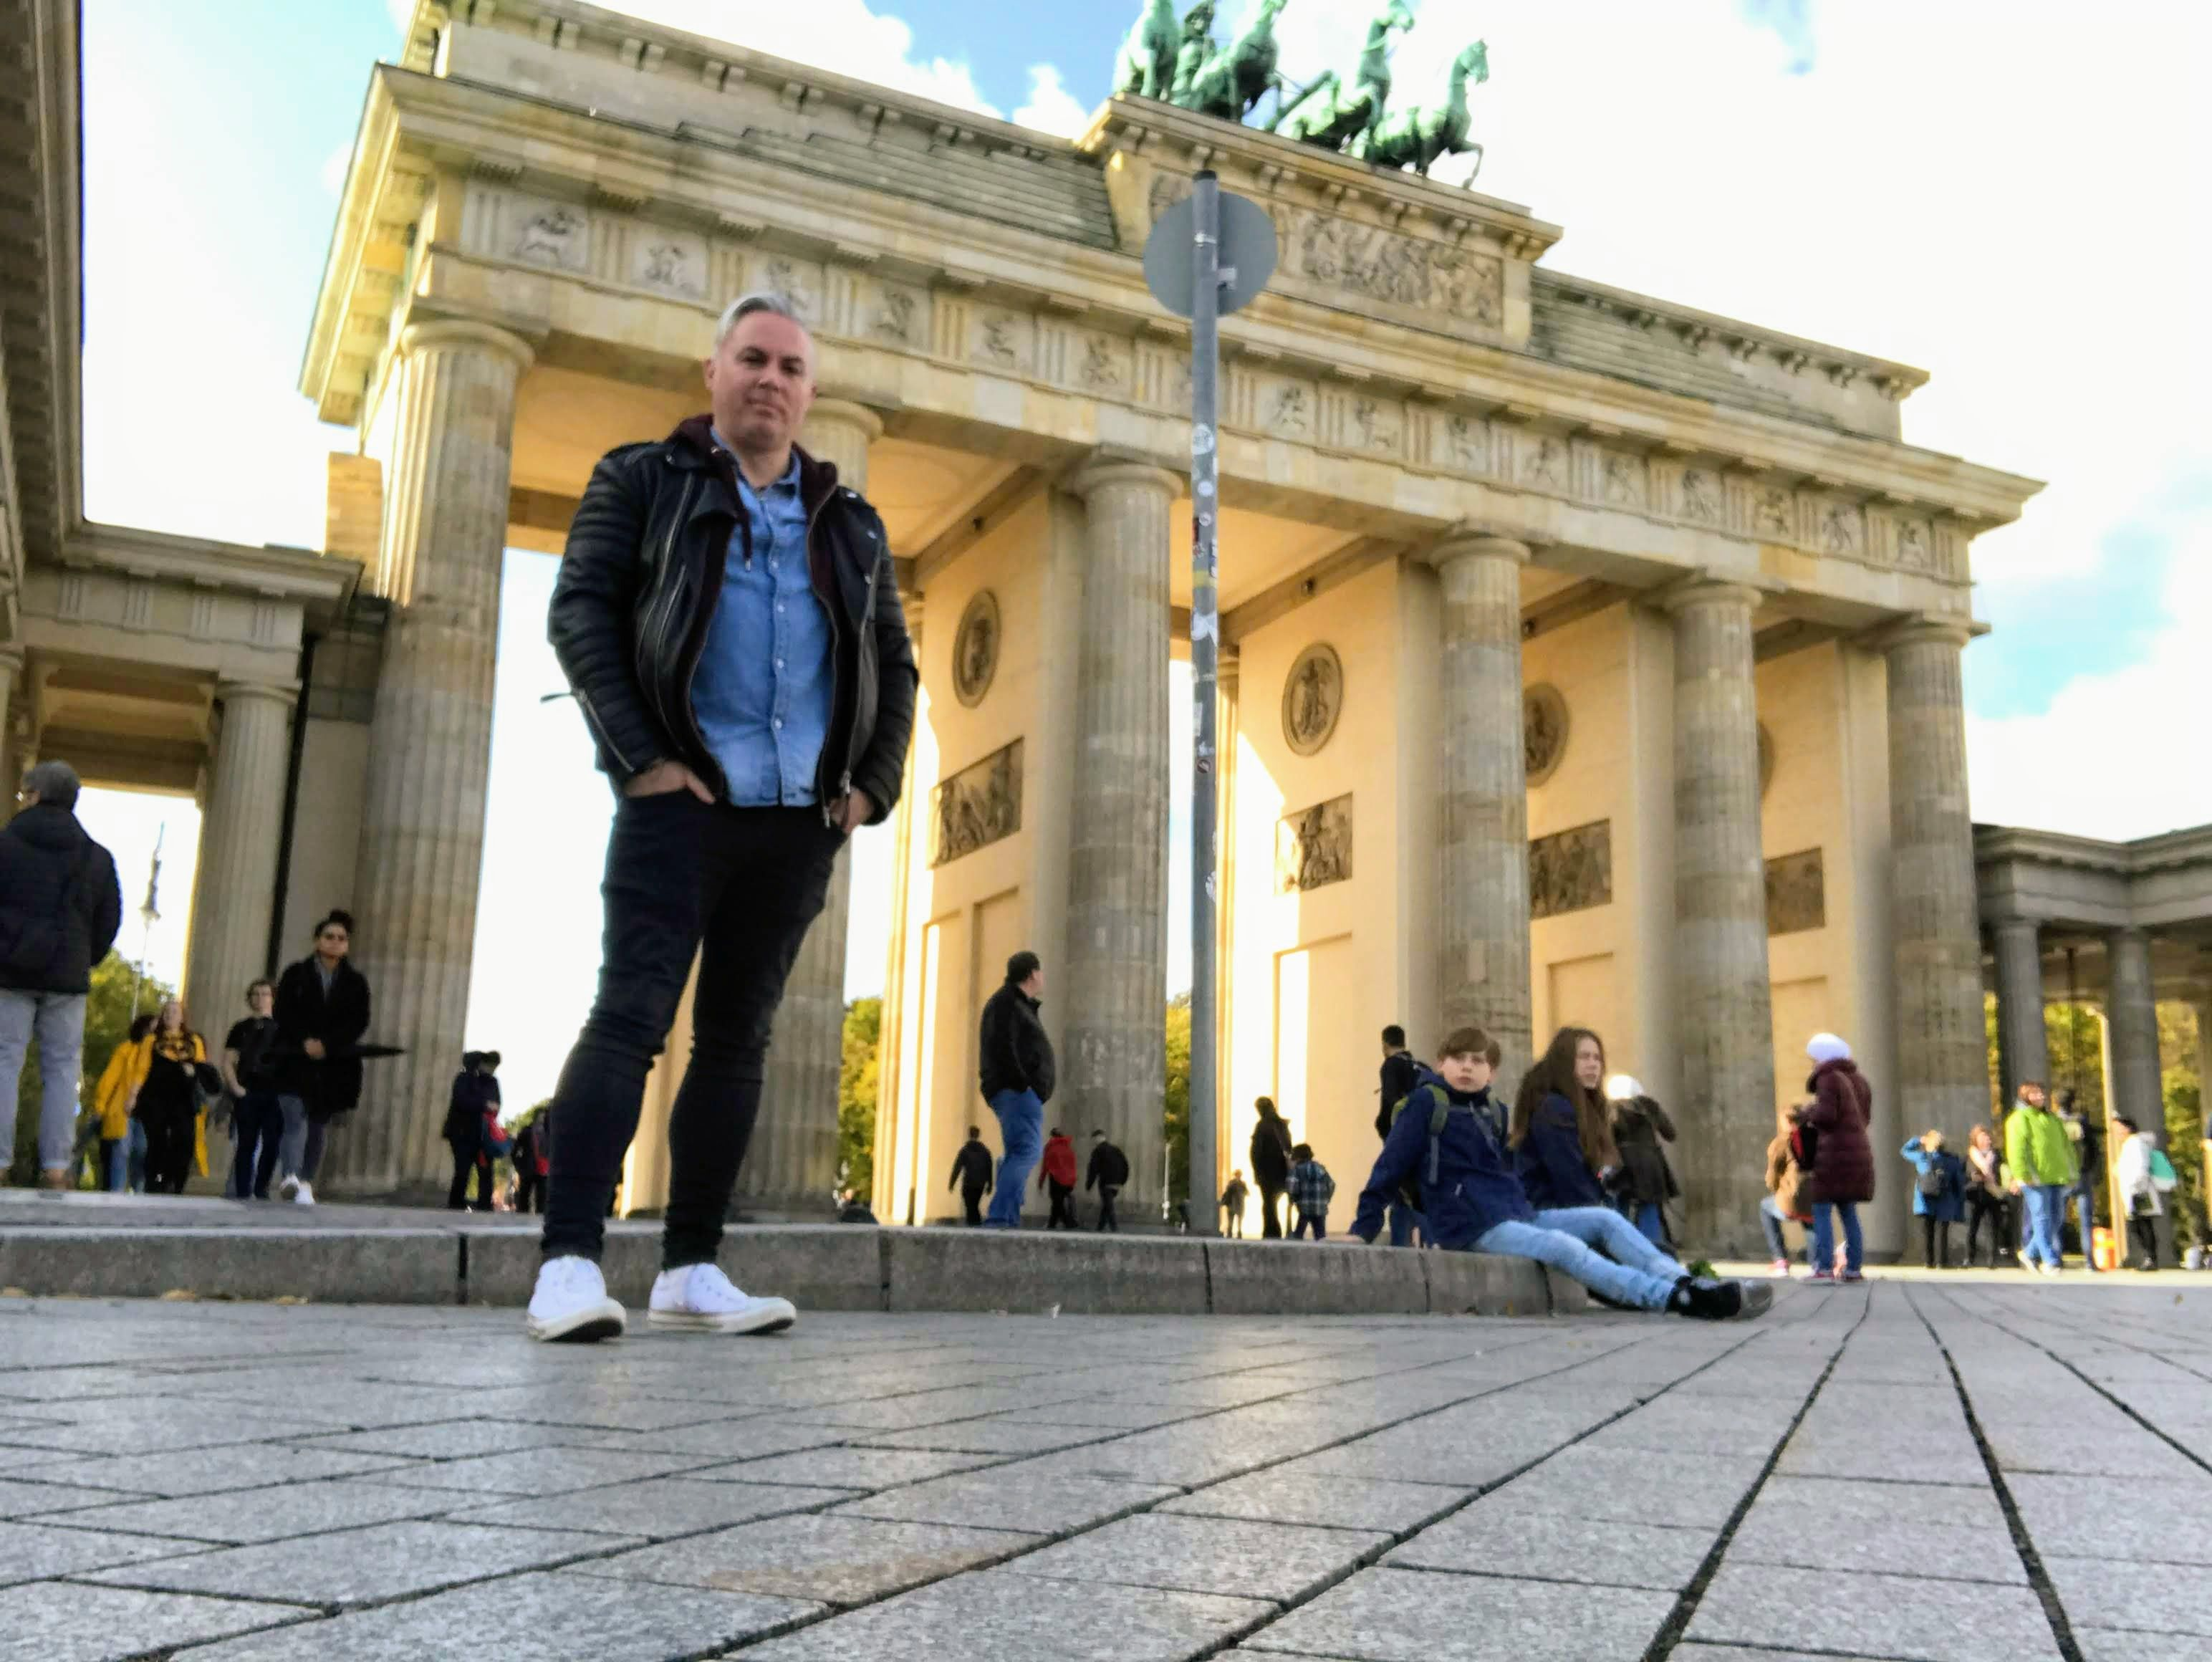 Shane pictured standing in front of the Brandenburg Gate